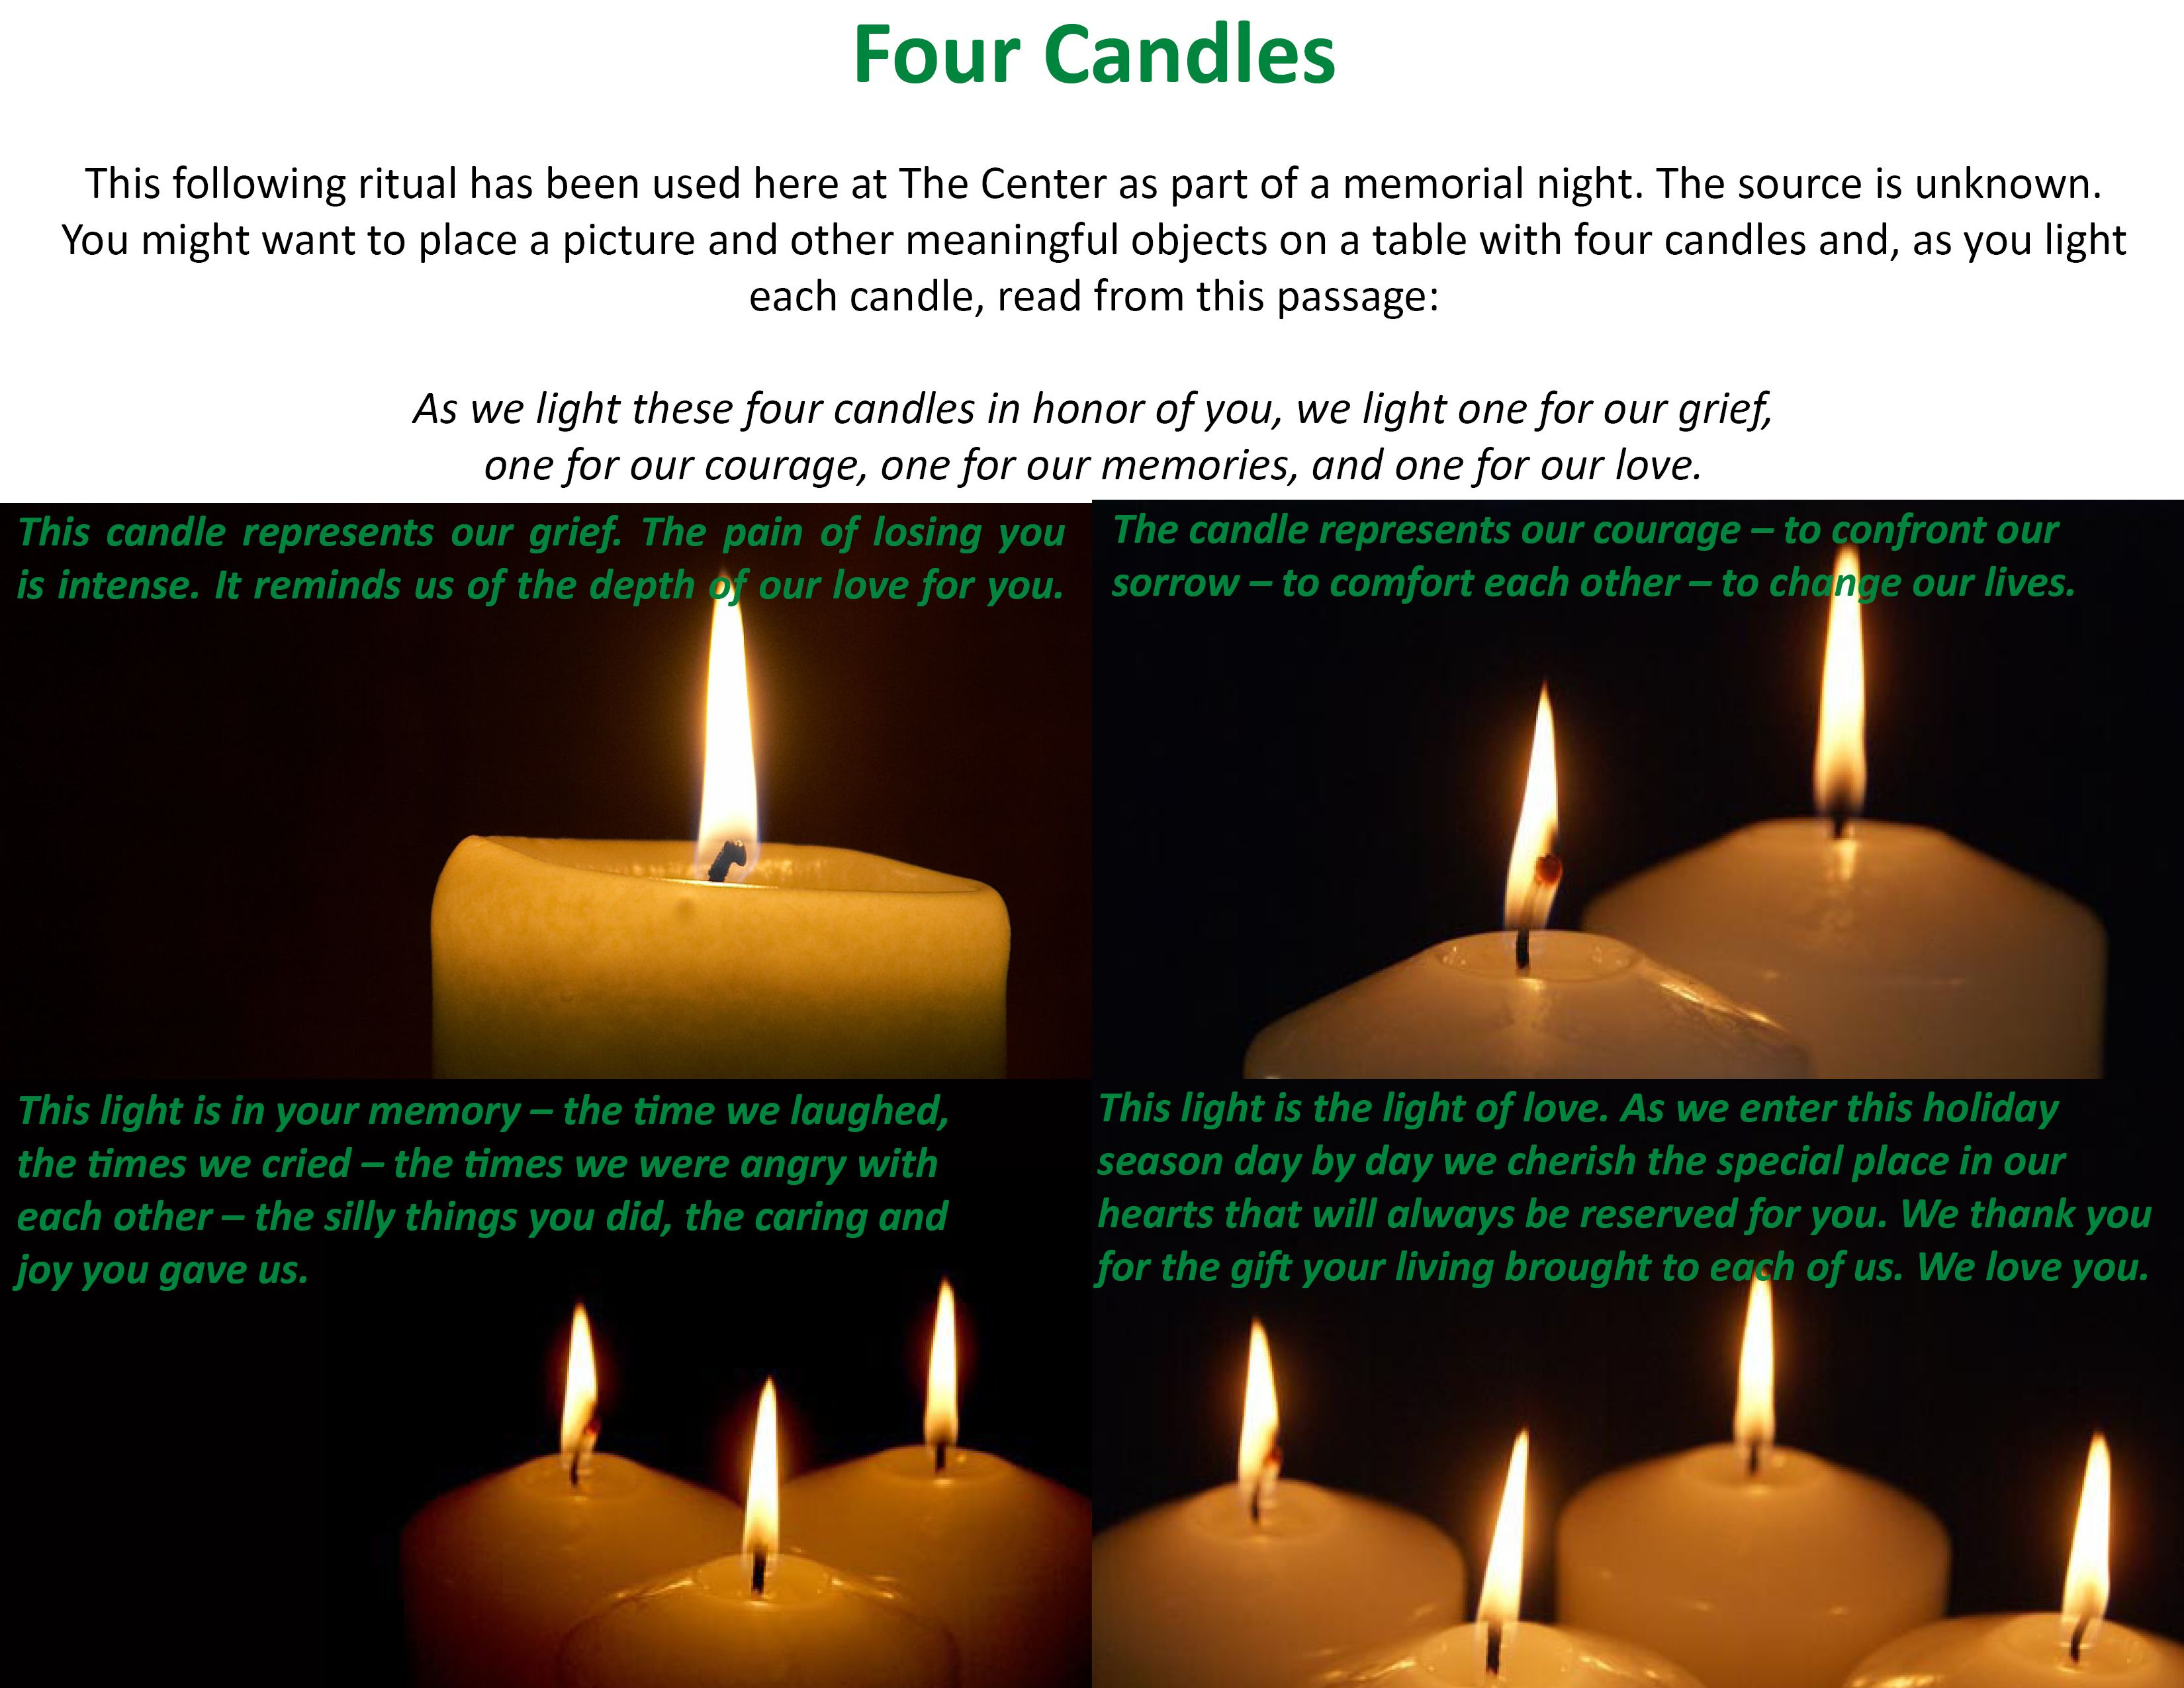 The Four Candles Ritual Is One Used Annually At The Center For Grieving Children At Our